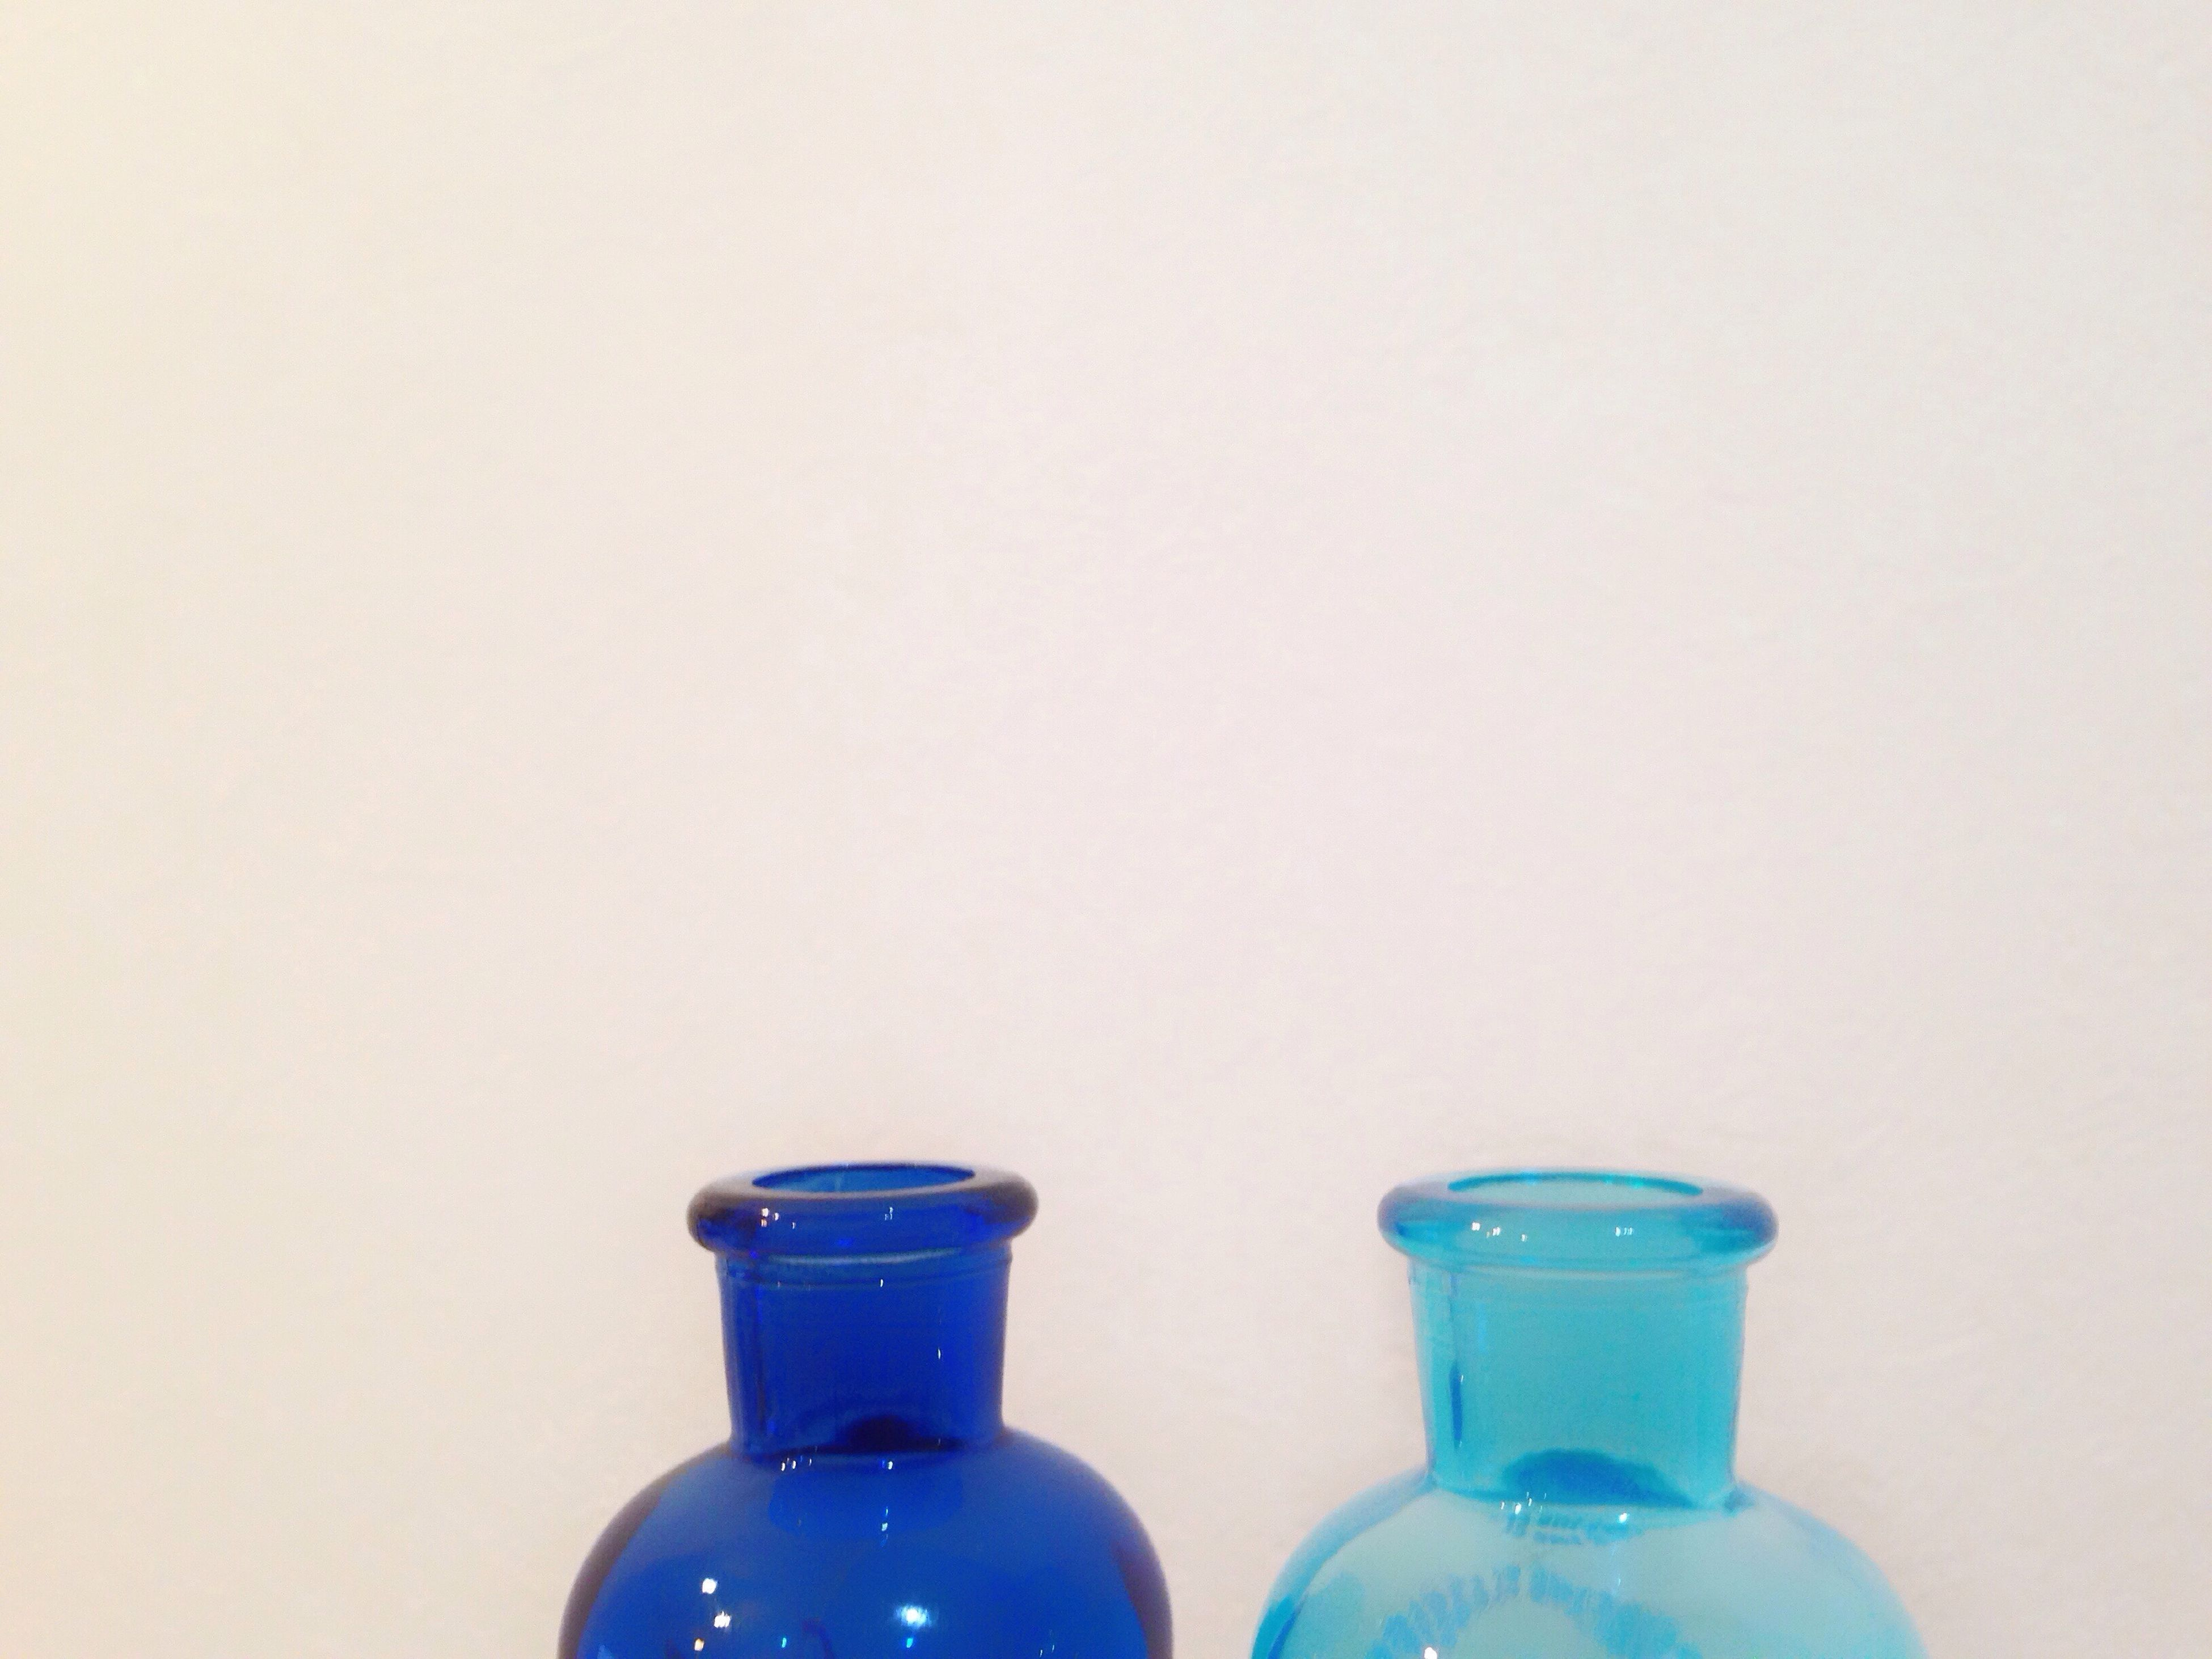 copy space, studio shot, white background, no people, bottle, close-up, indoors, day